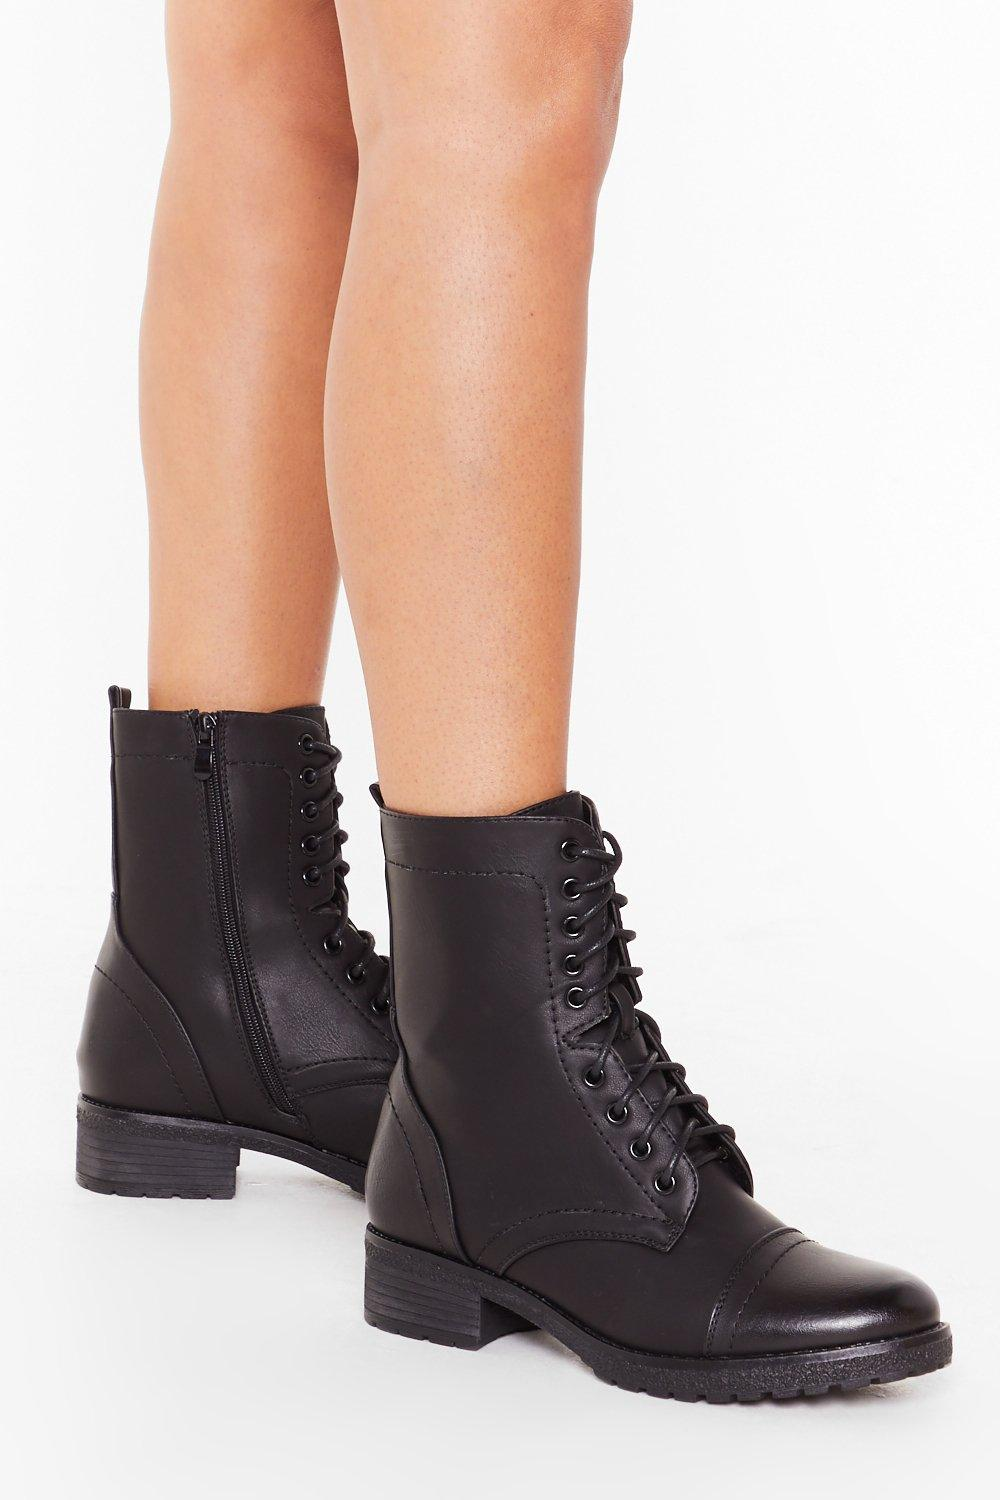 Image of Let's Stay Together Faux Leather Lace-Up Boots